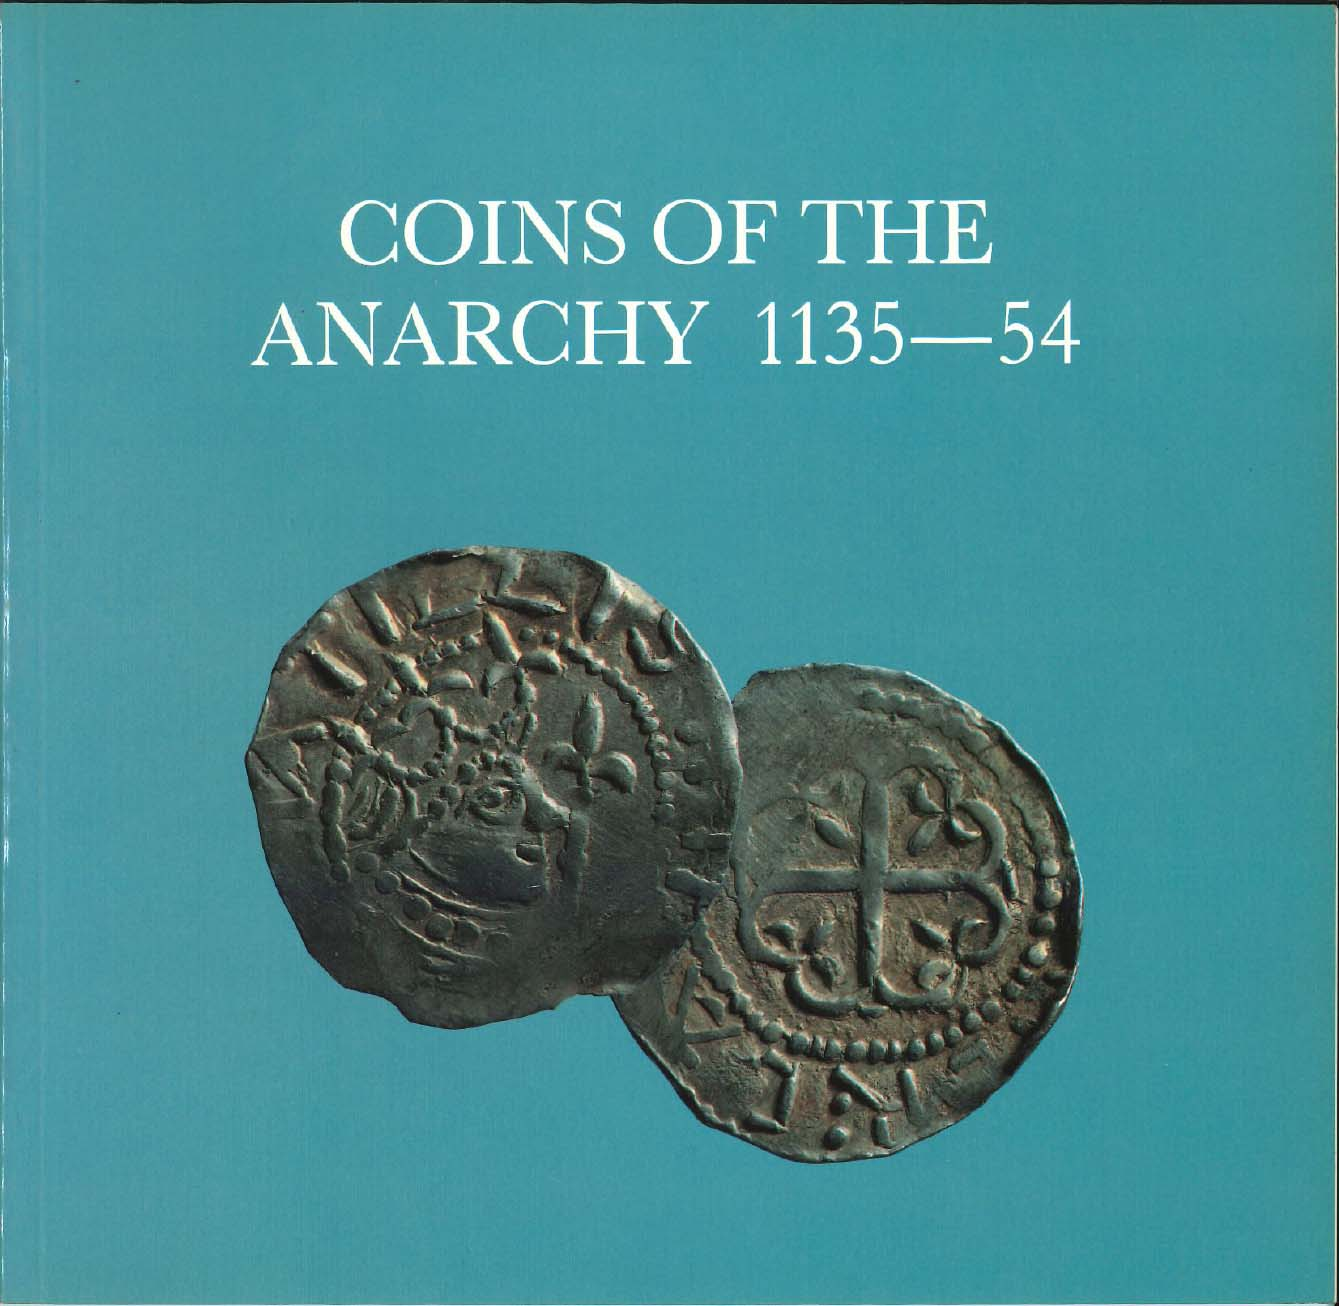 Coins of the Anarchy 1135-54